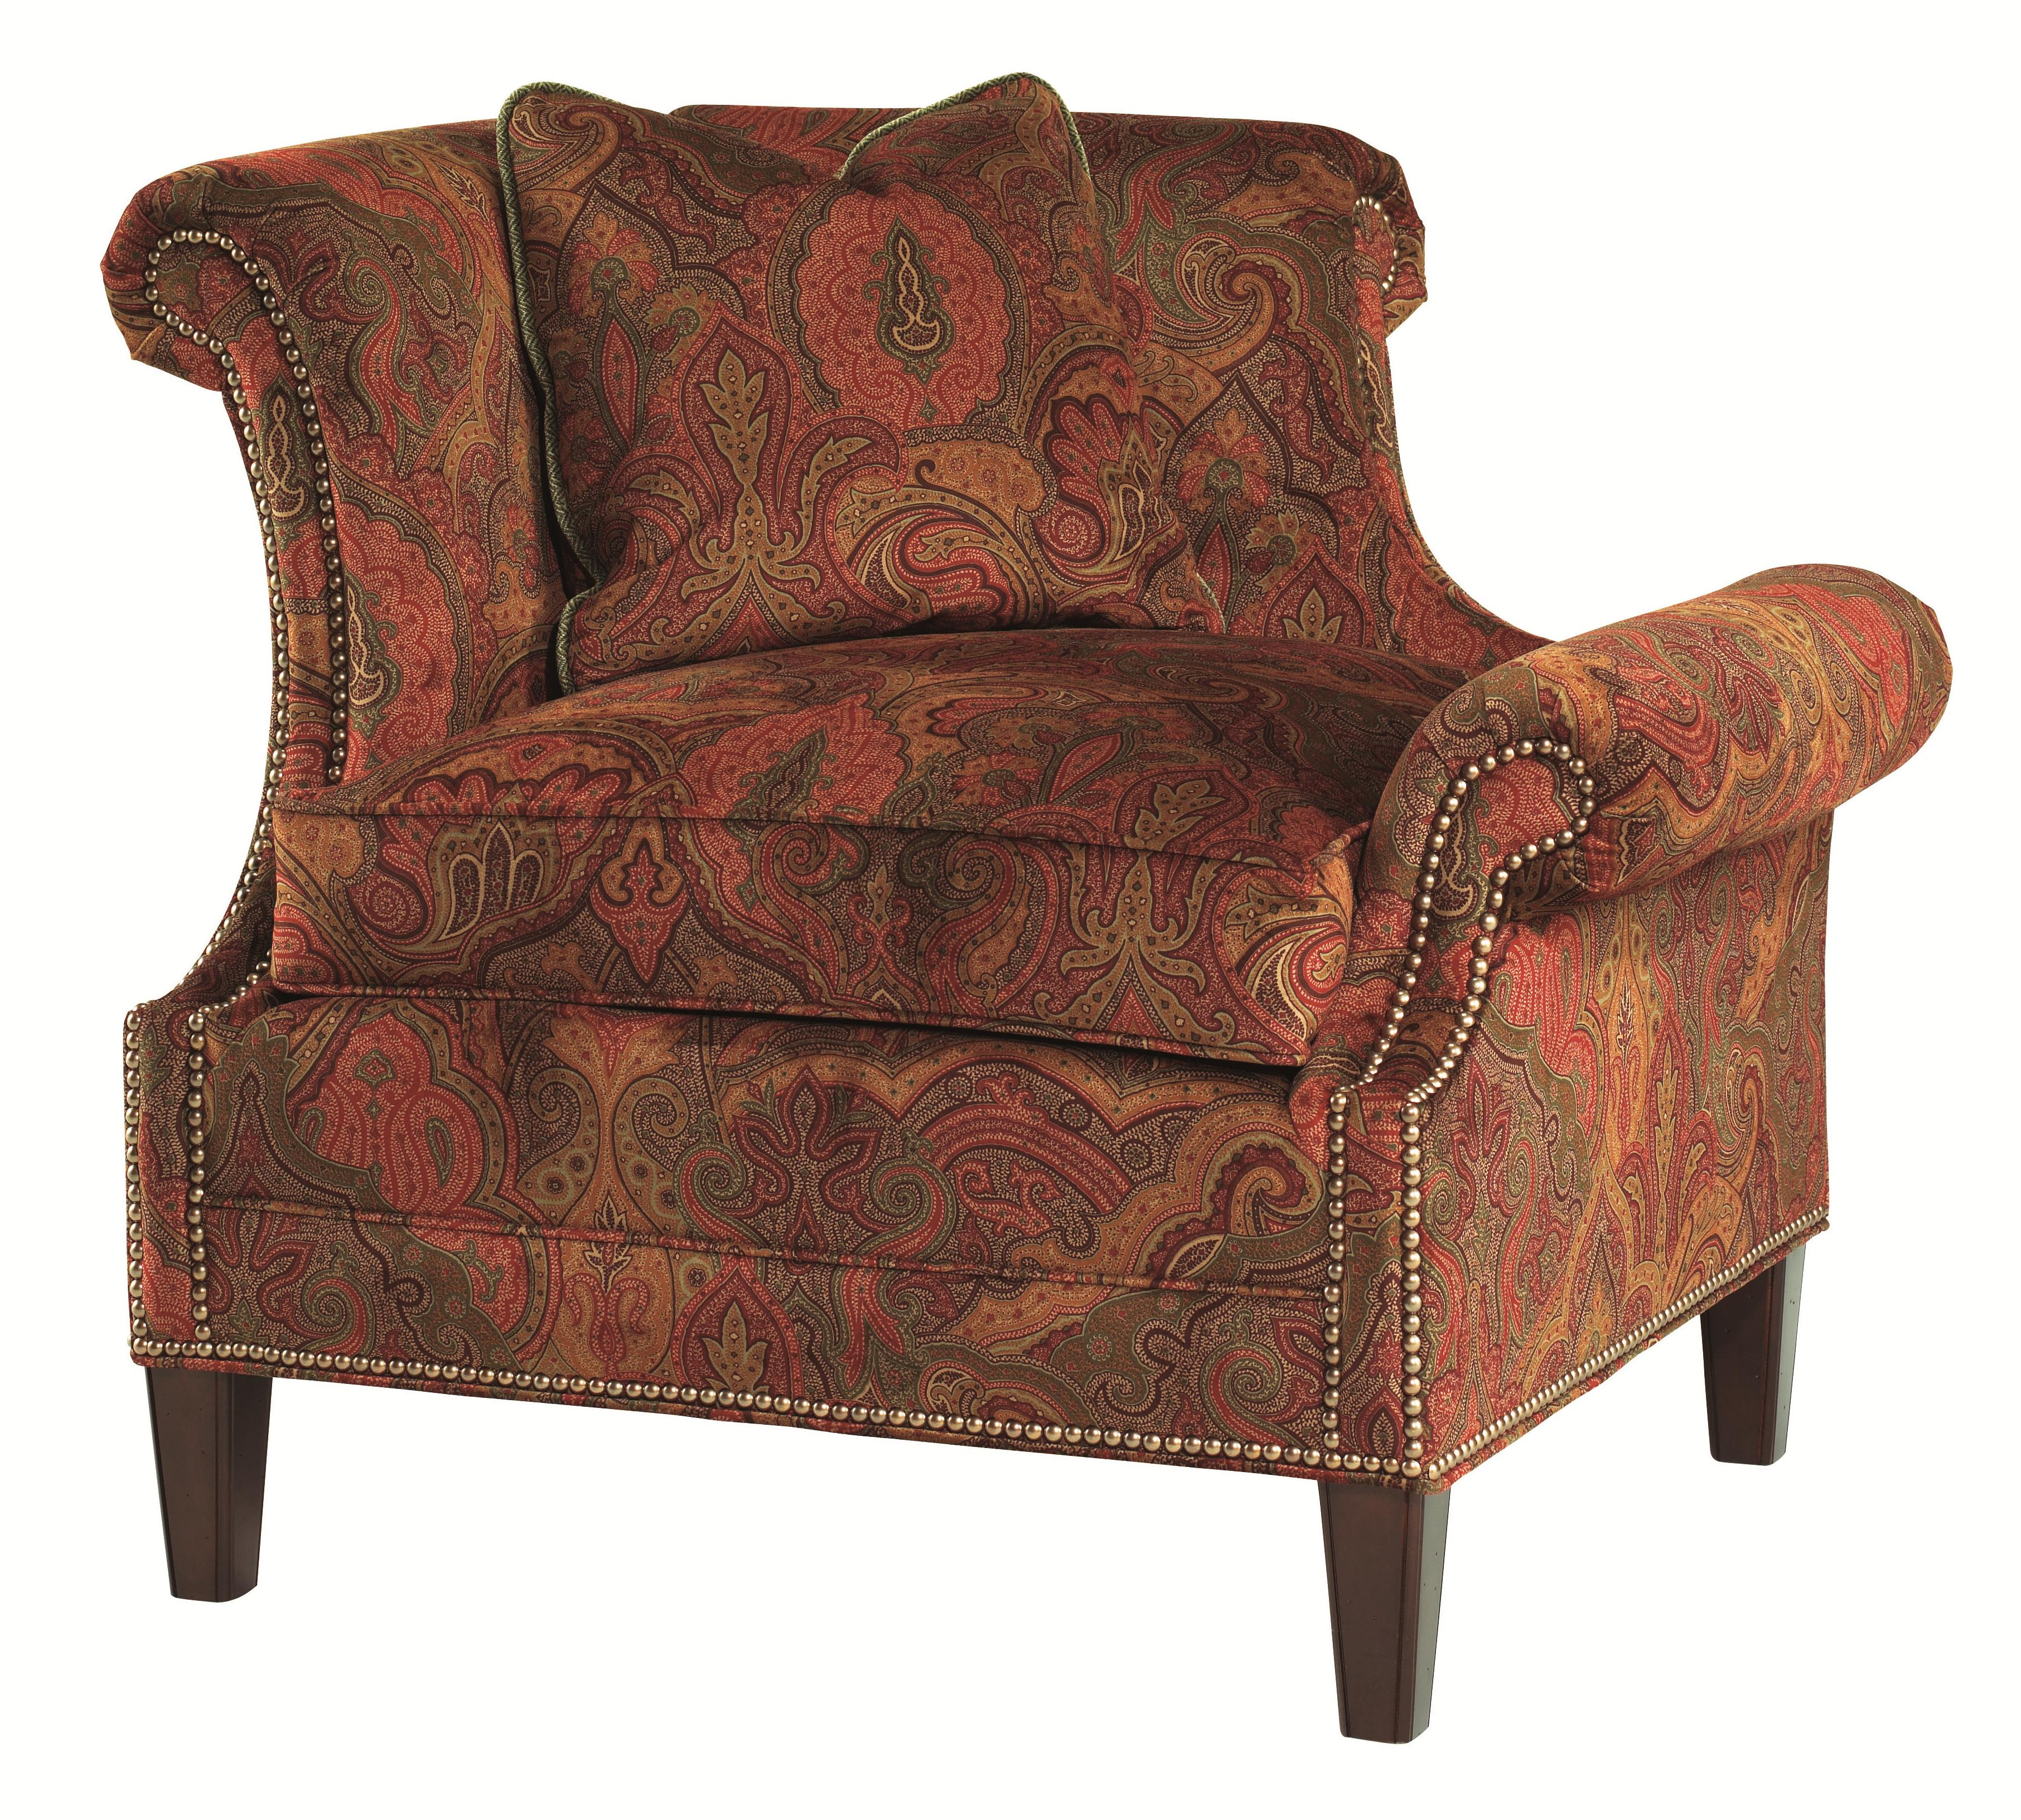 Lexington Upholstery Braddock Laf Upholstered Chair by Lexington at Johnny Janosik